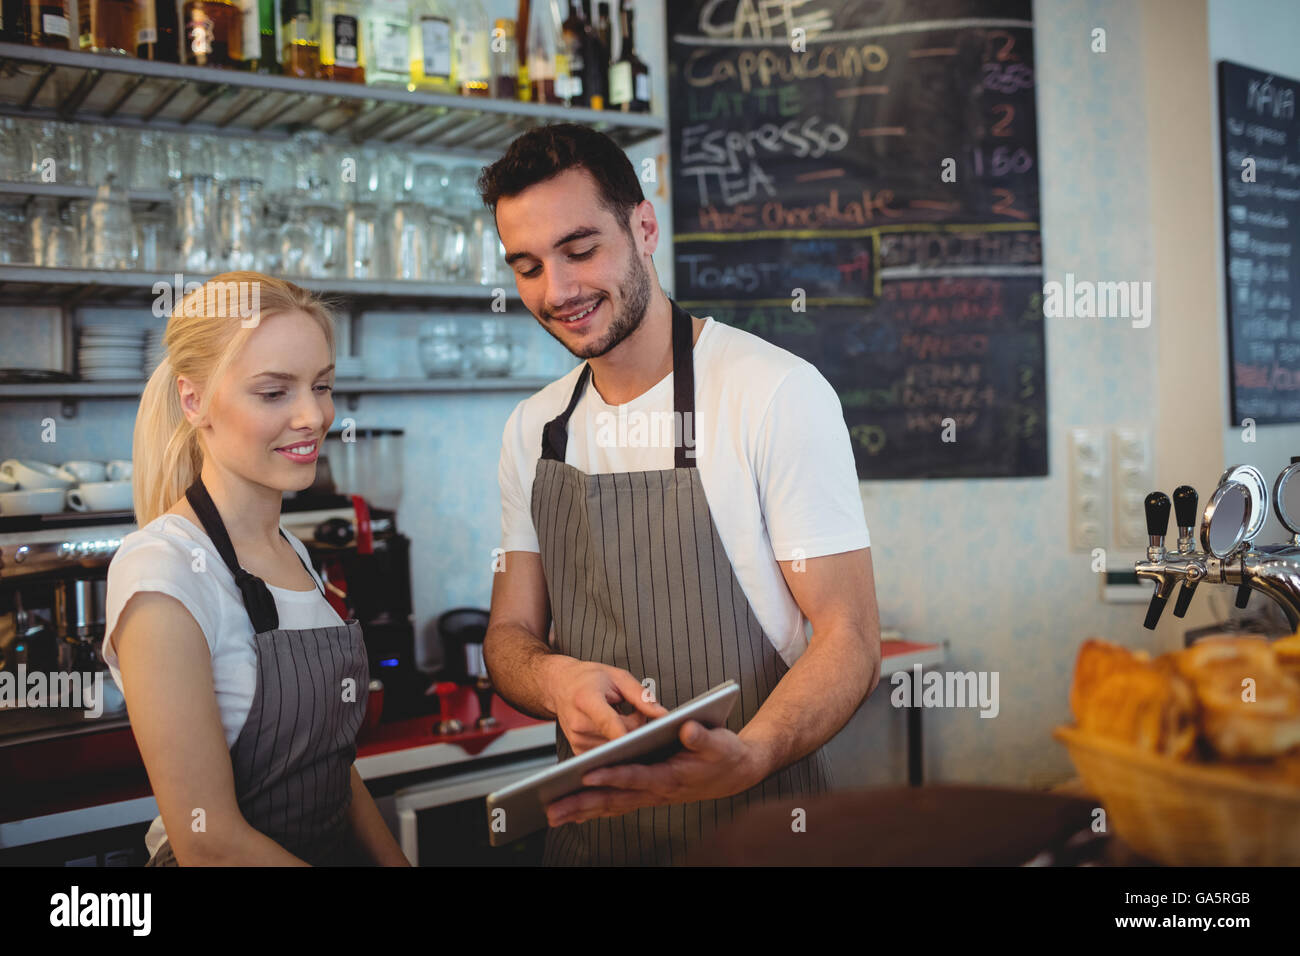 Happy co-workers using digital tablet - Stock Image